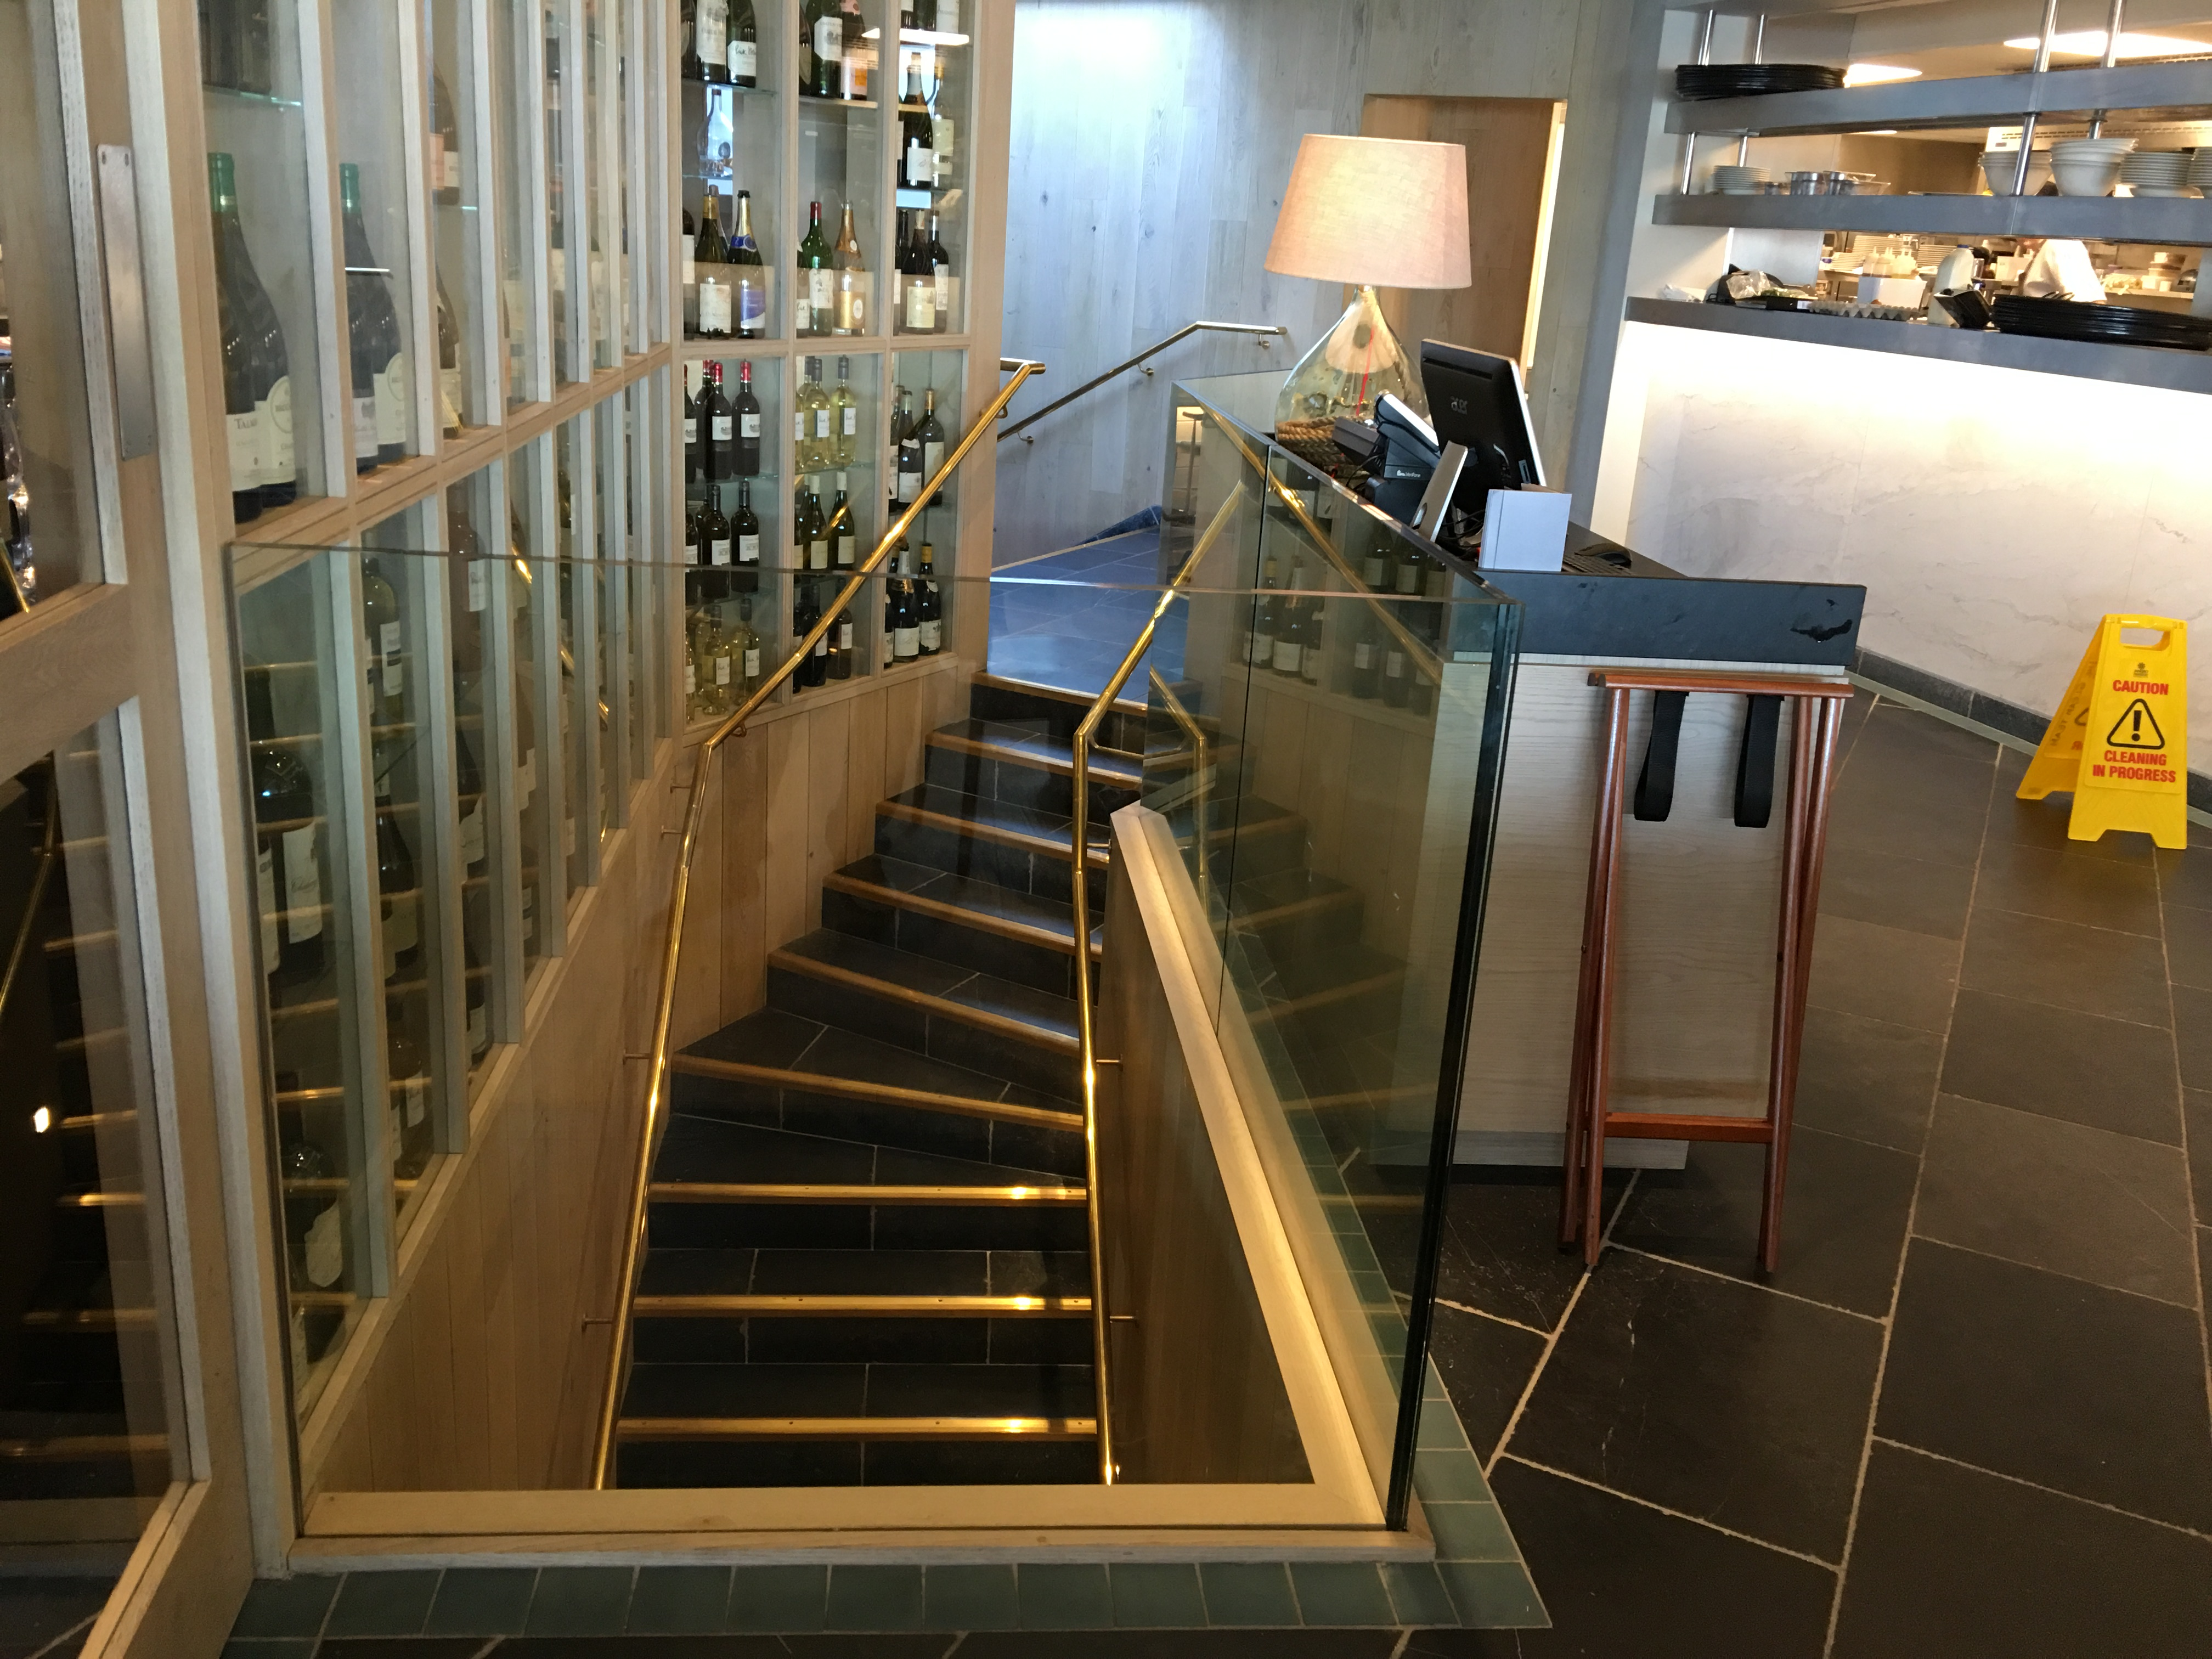 Mild steel staircase with brass handrails and structural glass balustrading.